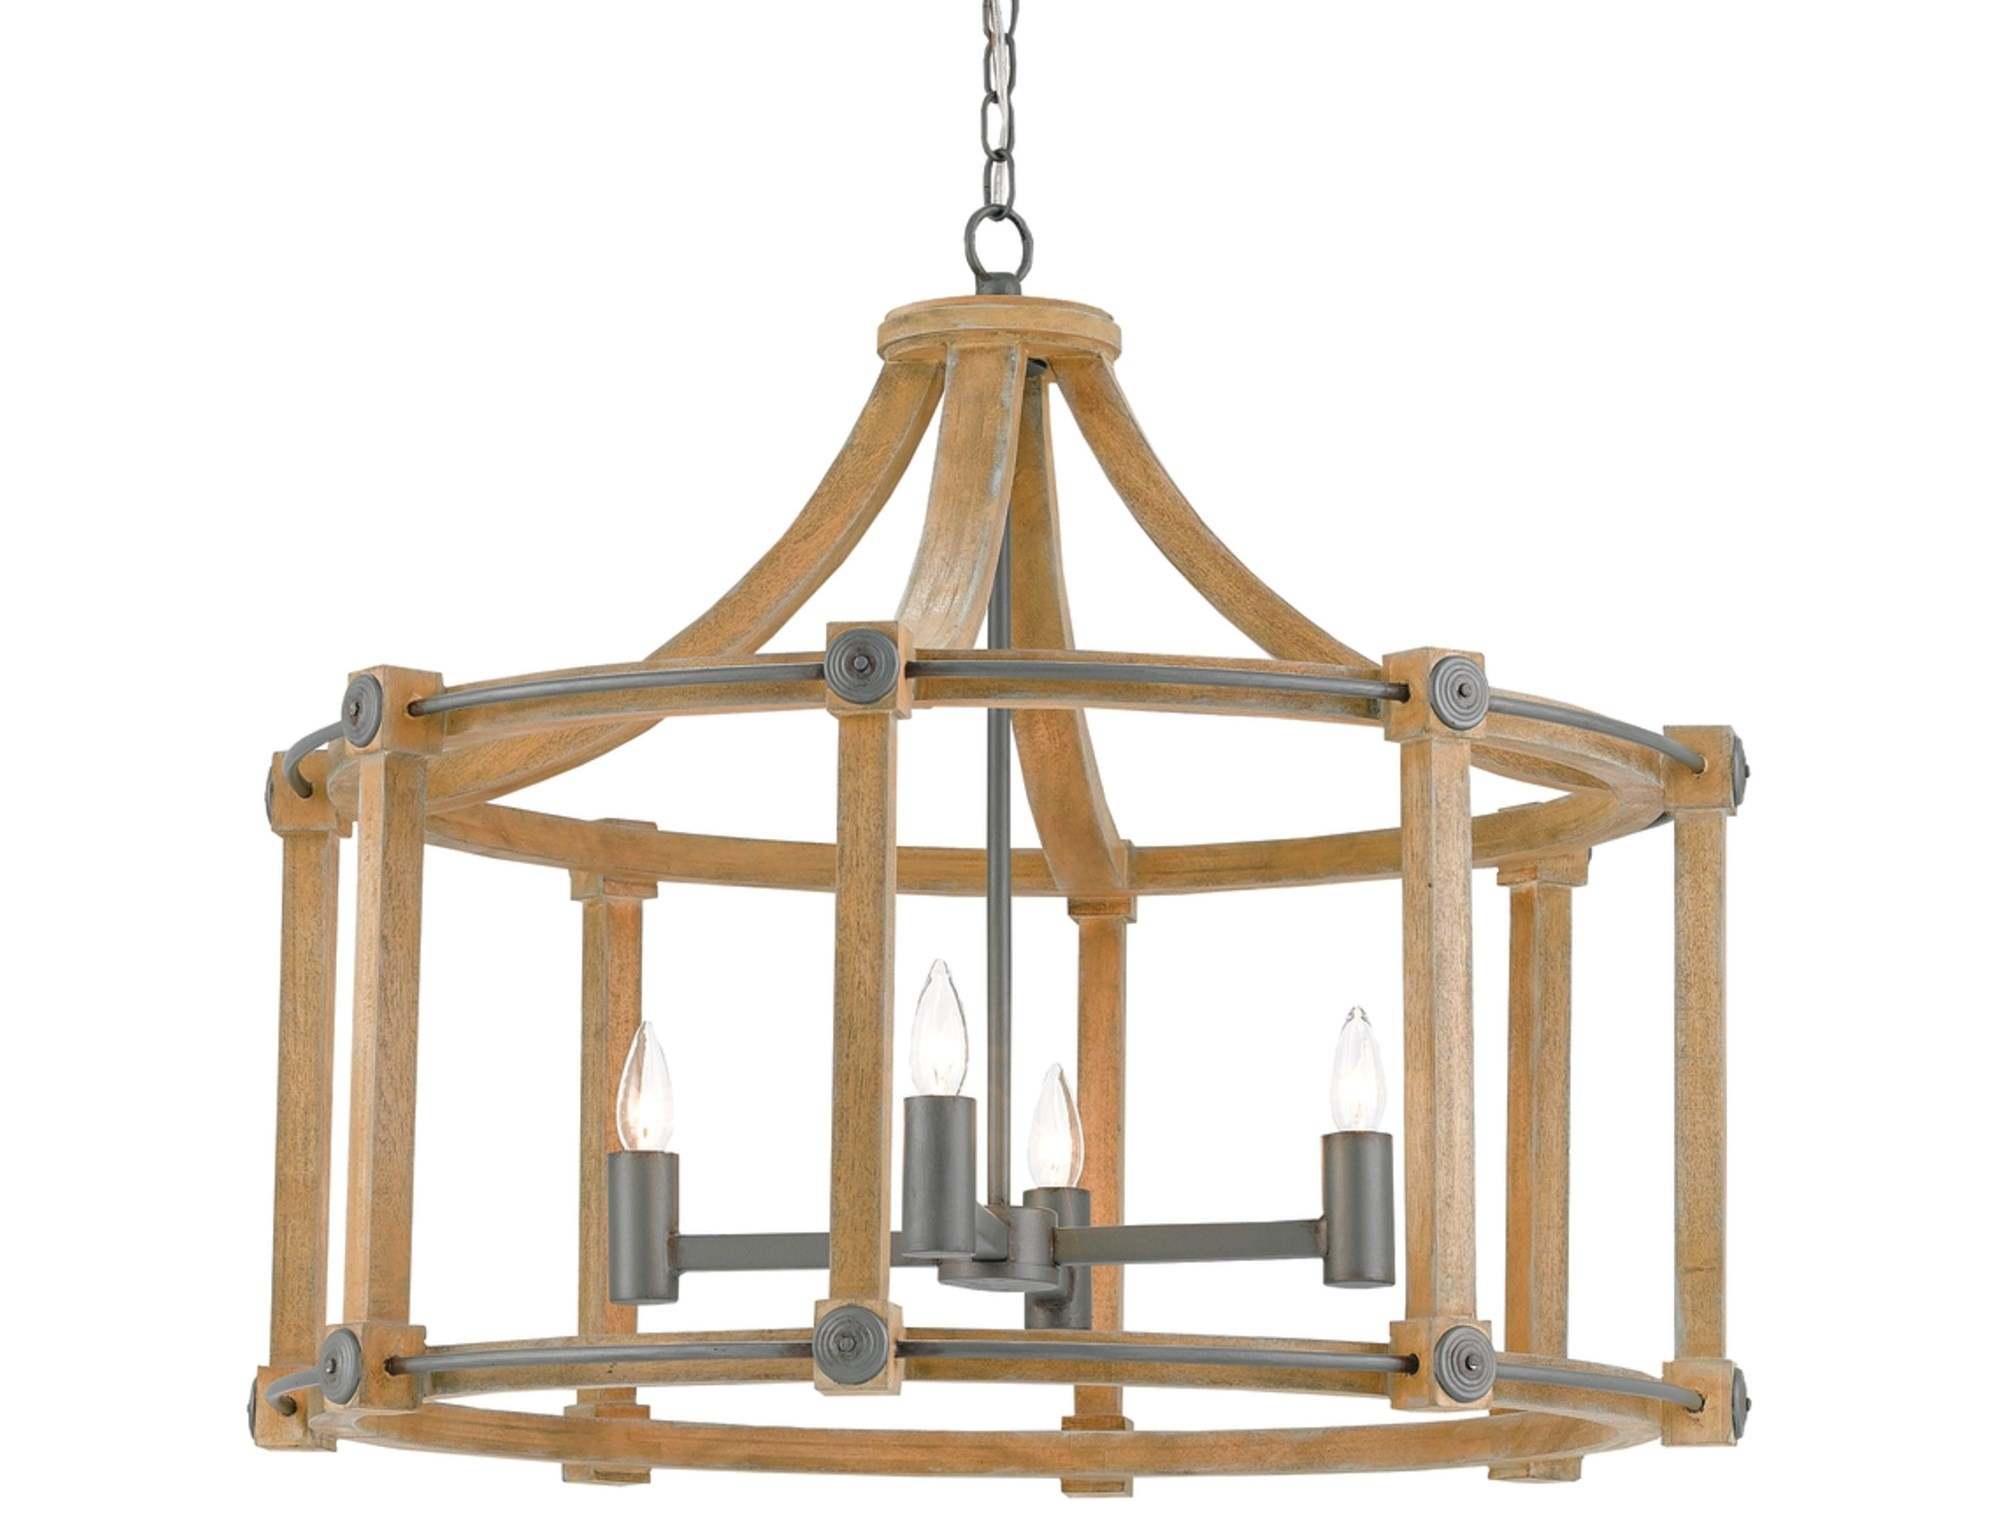 Chandelier Lighting Modern Chandeliers Currey And Company Pertaining To Modern Wrought Iron Chandeliers (View 13 of 15)